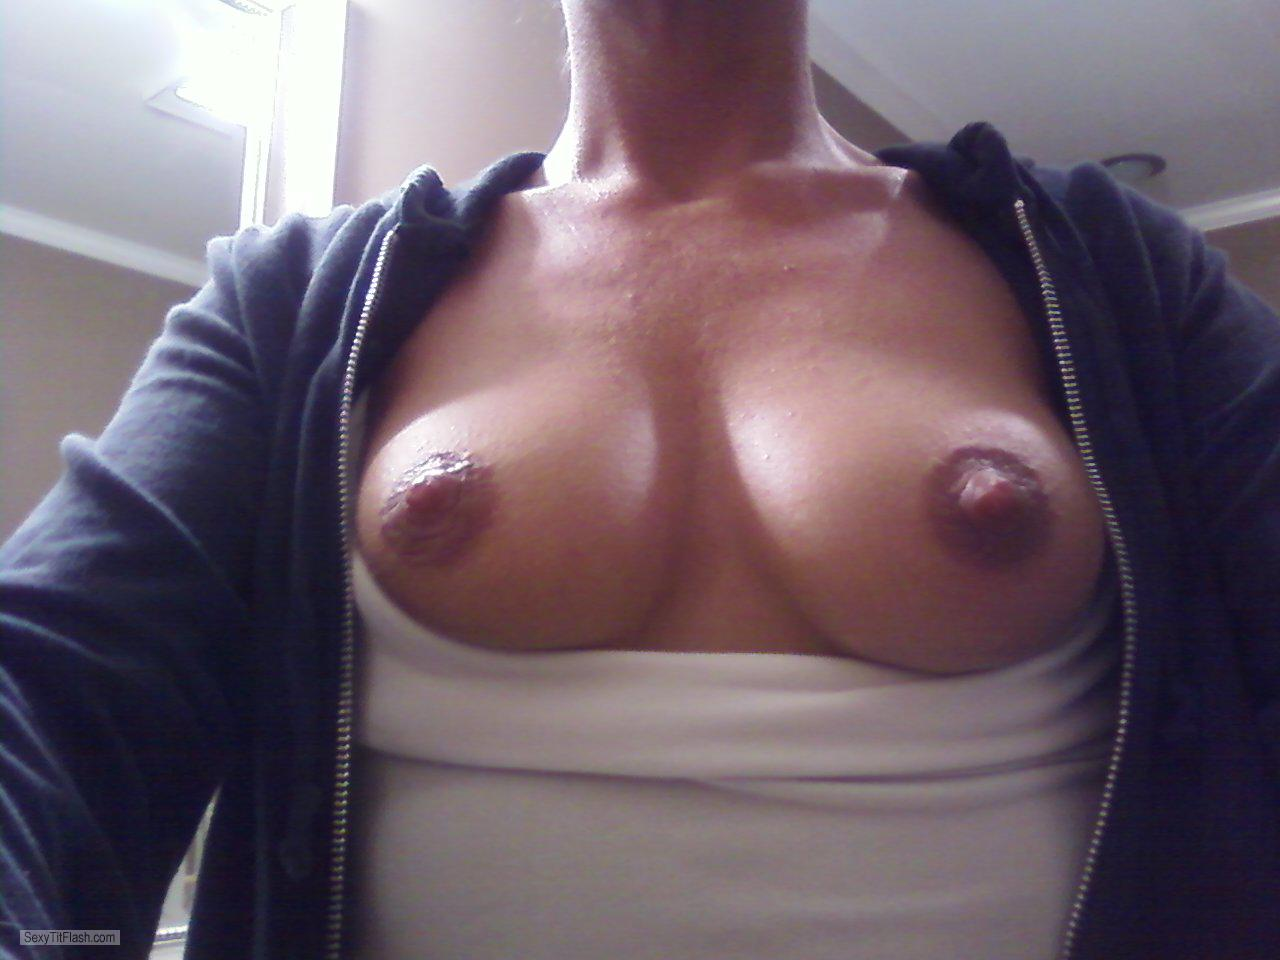 Very small Tits Of My Wife Selfie by Hotwife21